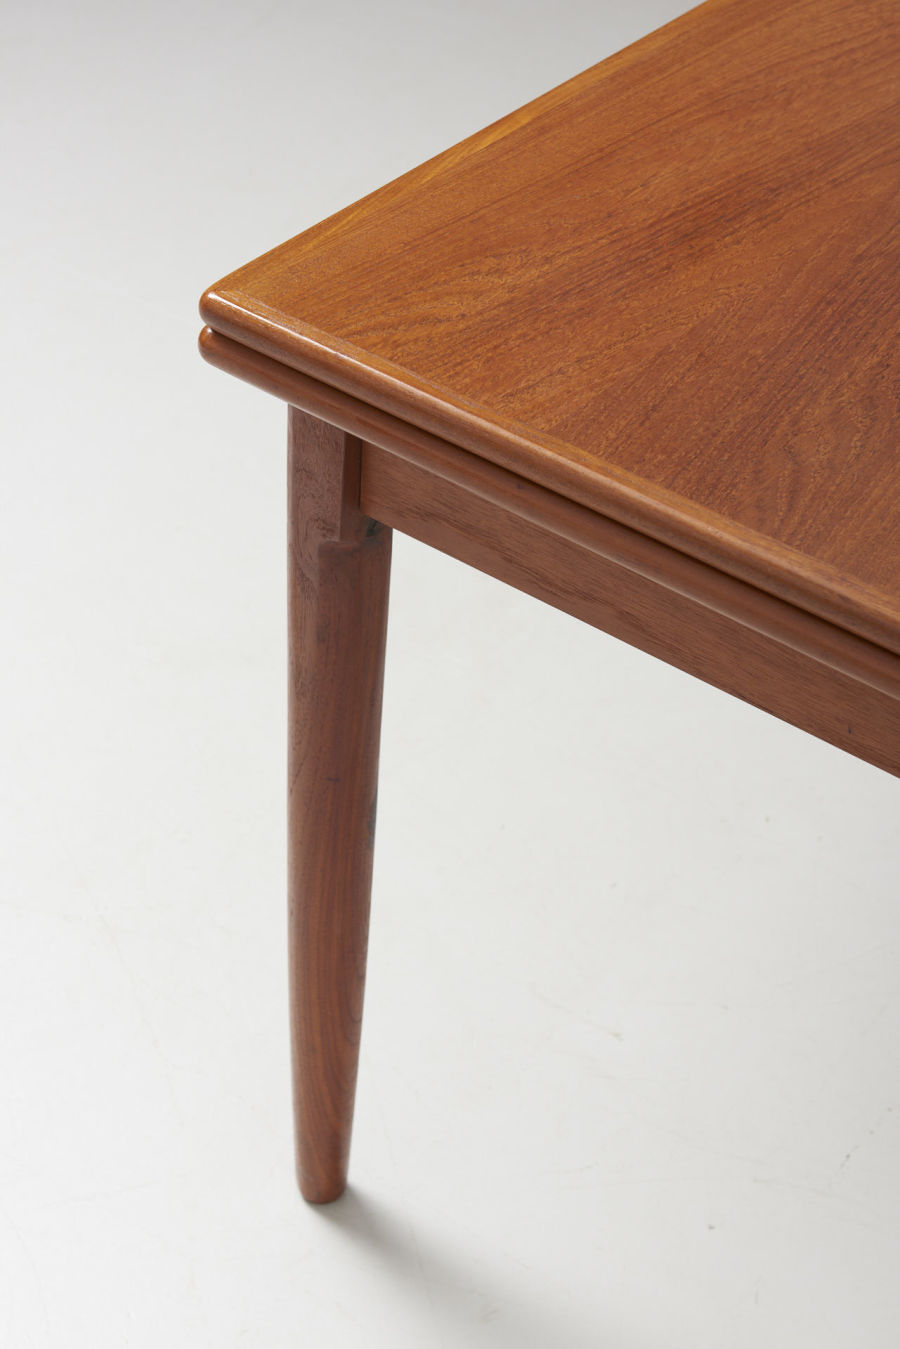 modestfurniture-vintage-2185-dining-table-teak-pull-out05